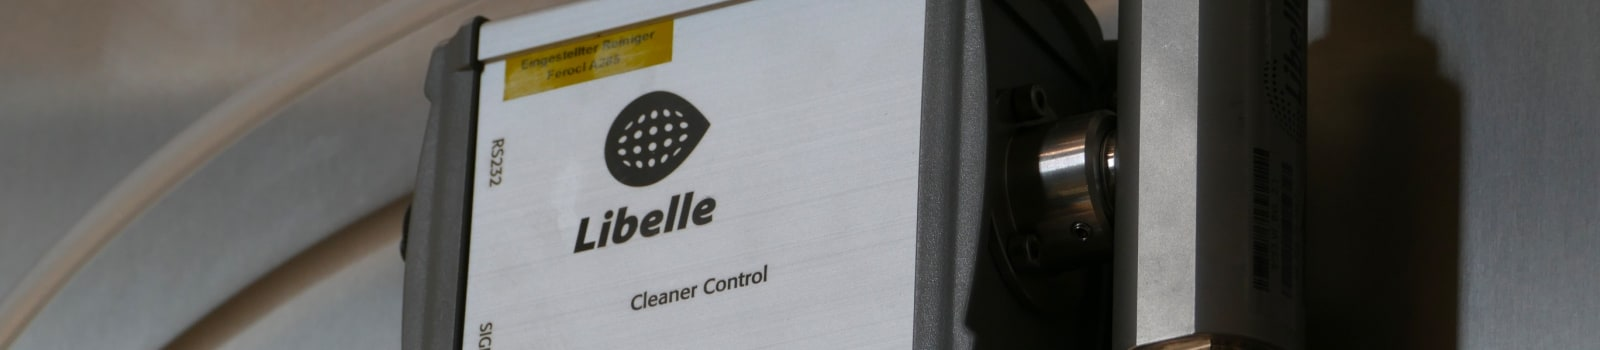 Libelle Cleaner Control